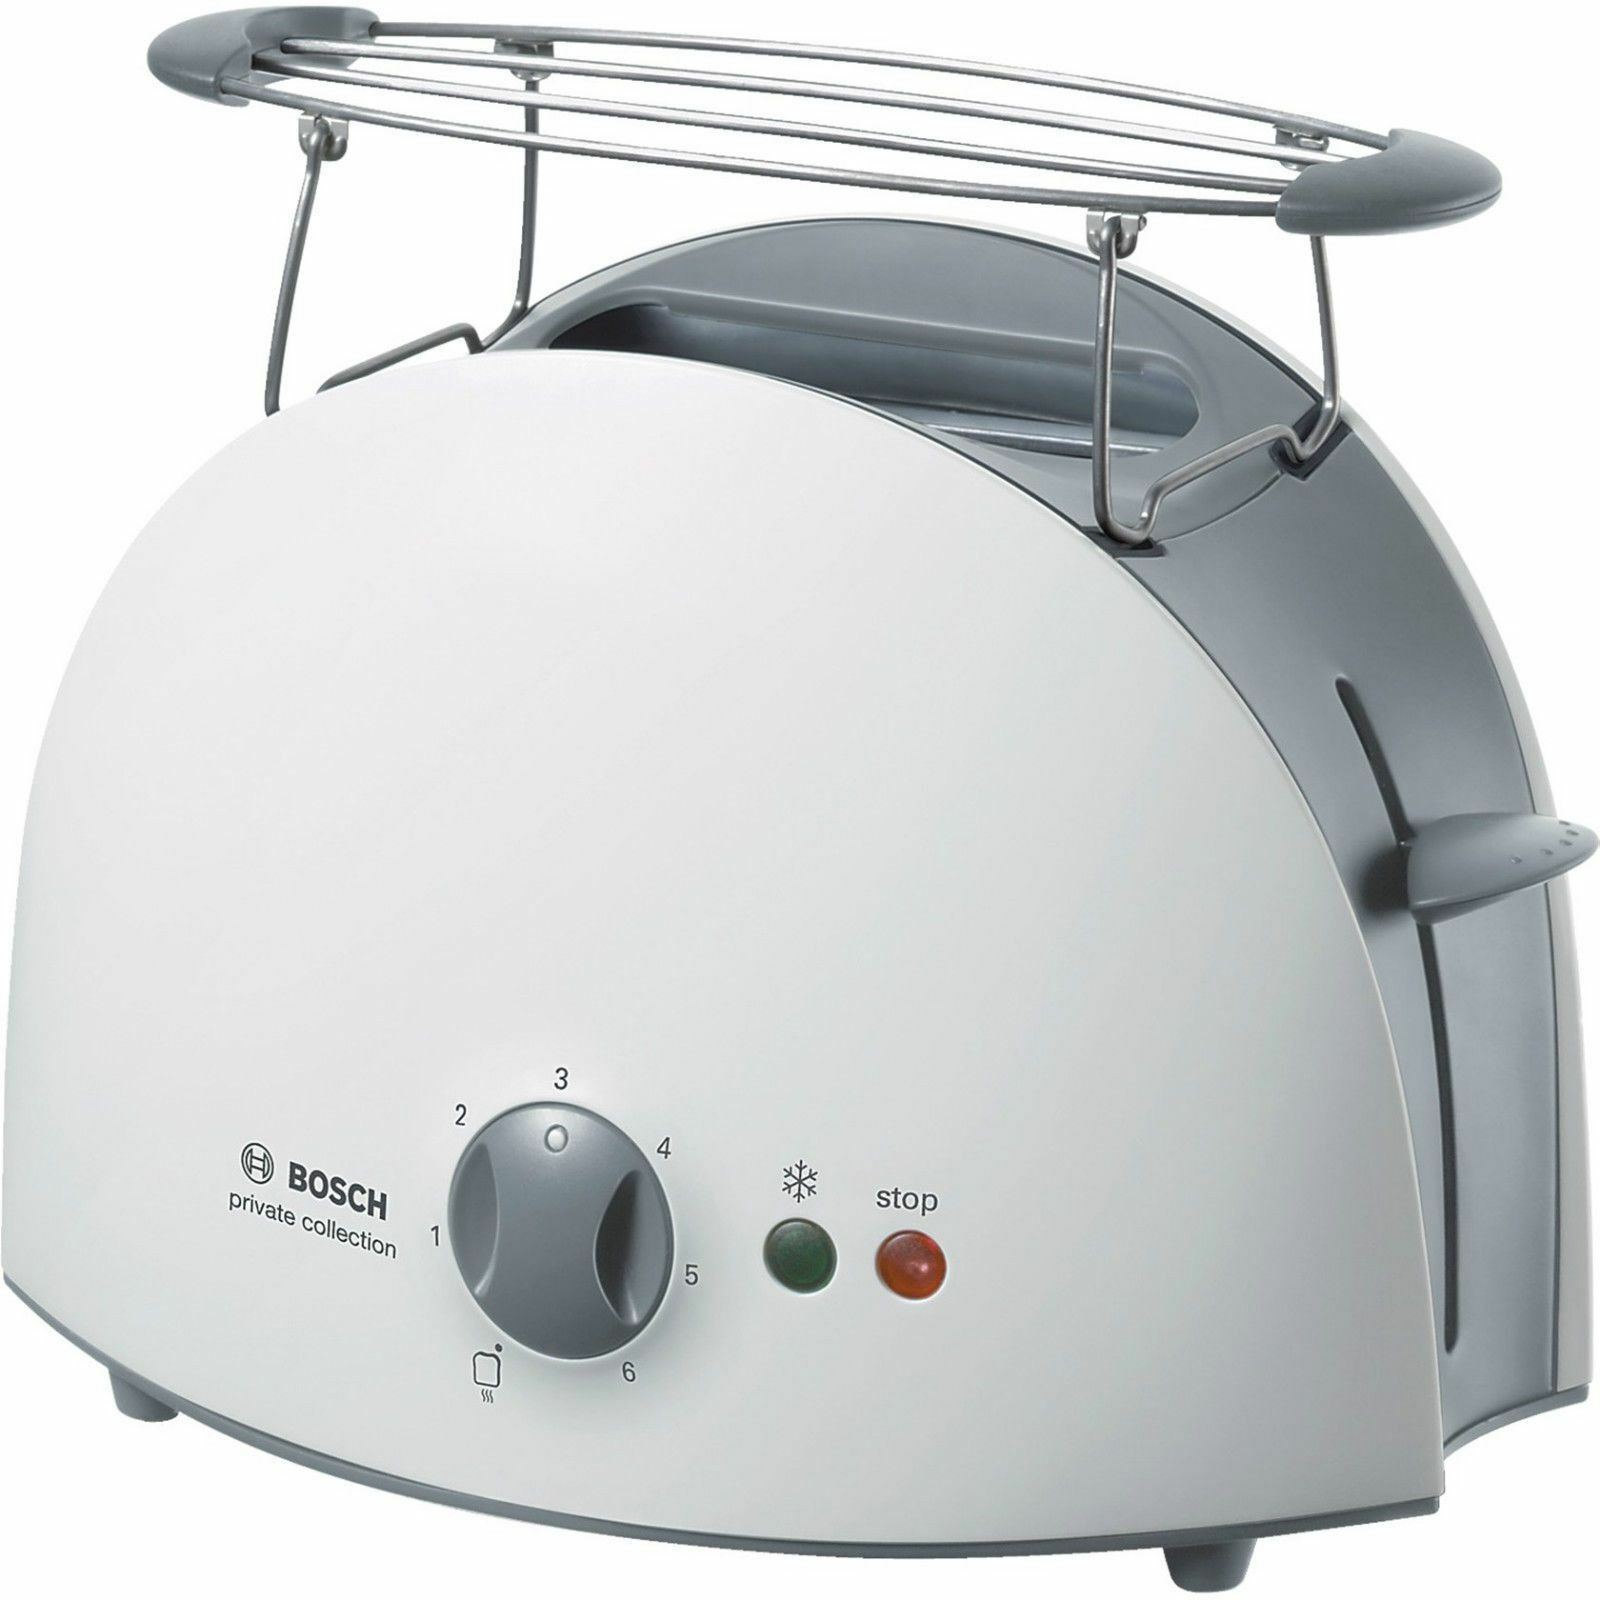 BOSCH 2 SCHEIBEN Toaster Heimküche Private Collection mit Variable ...